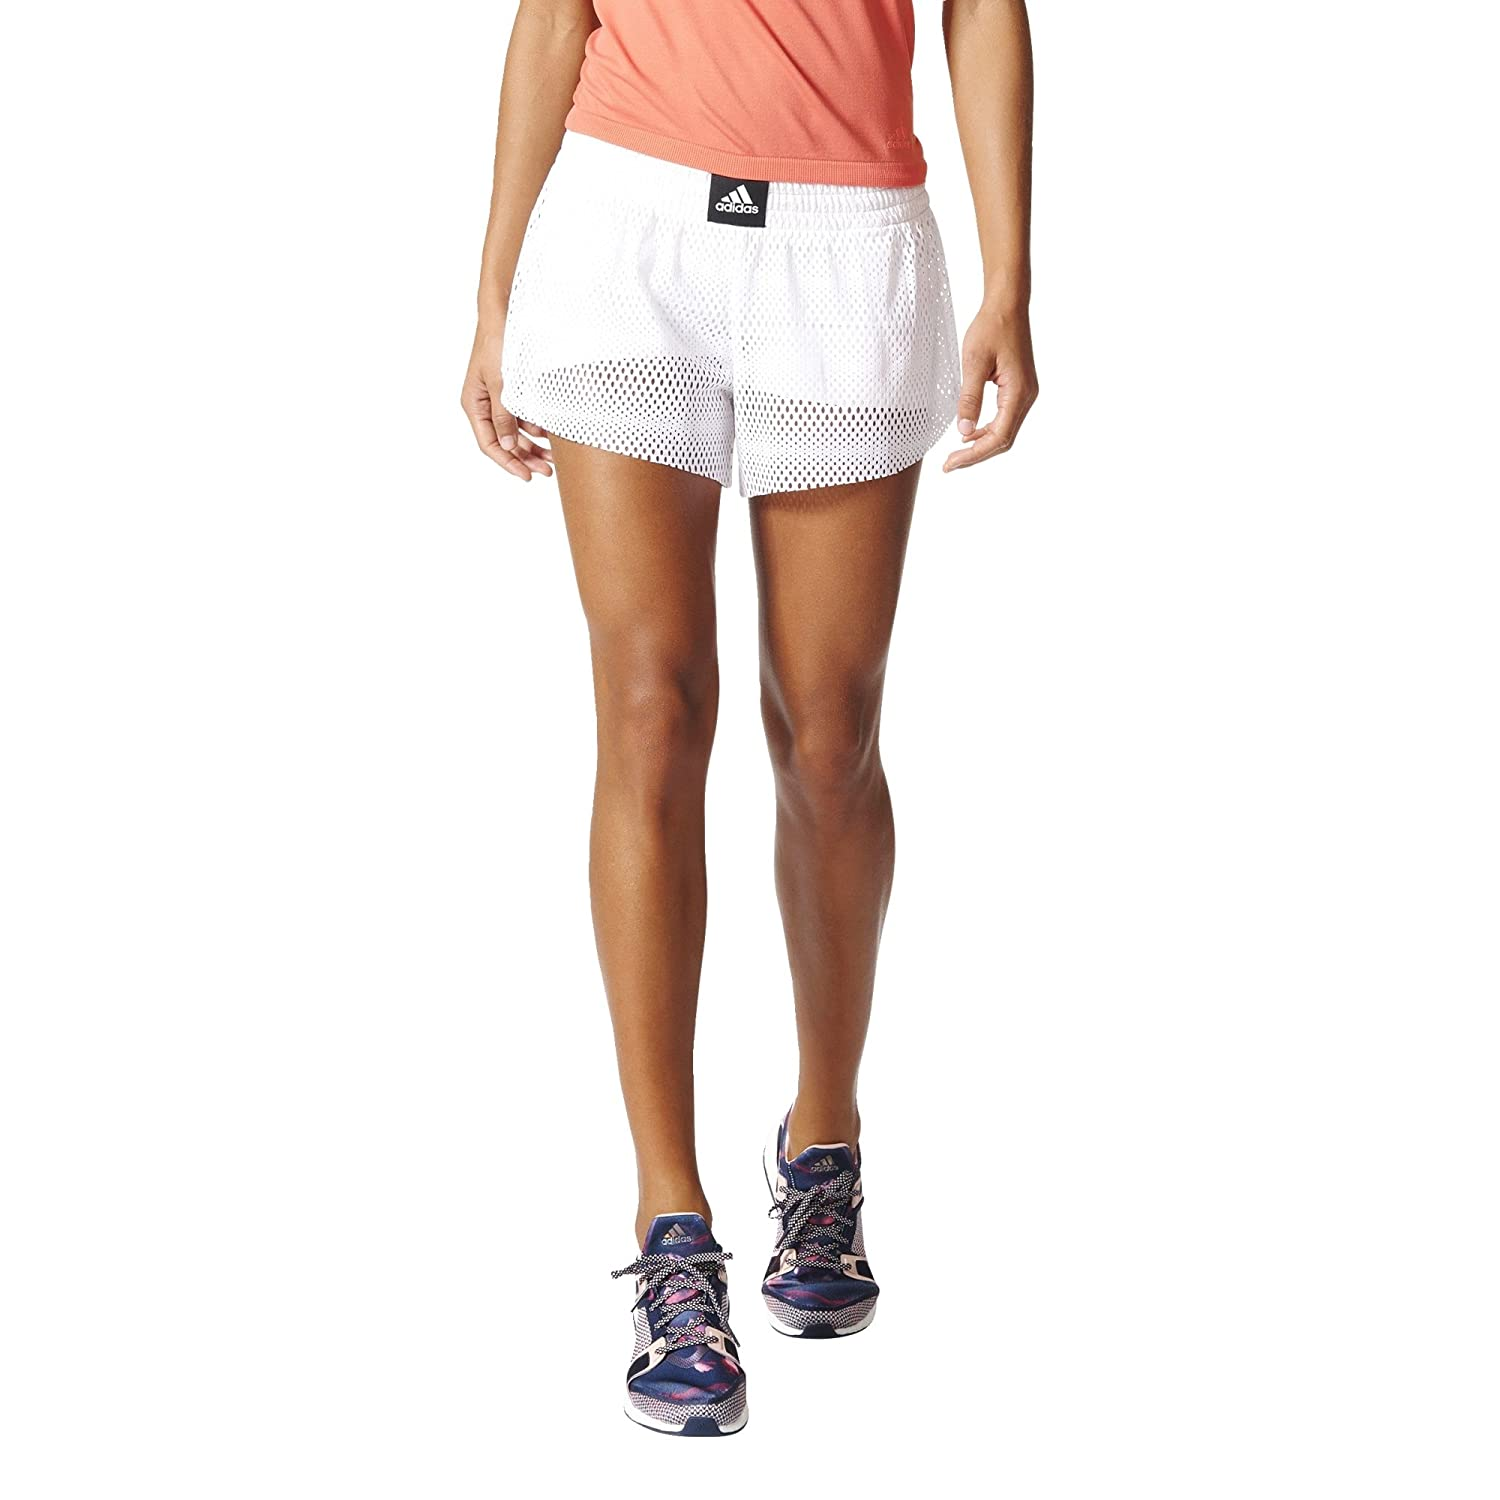 Adidas Women's Two-in-One Mesh Shorts